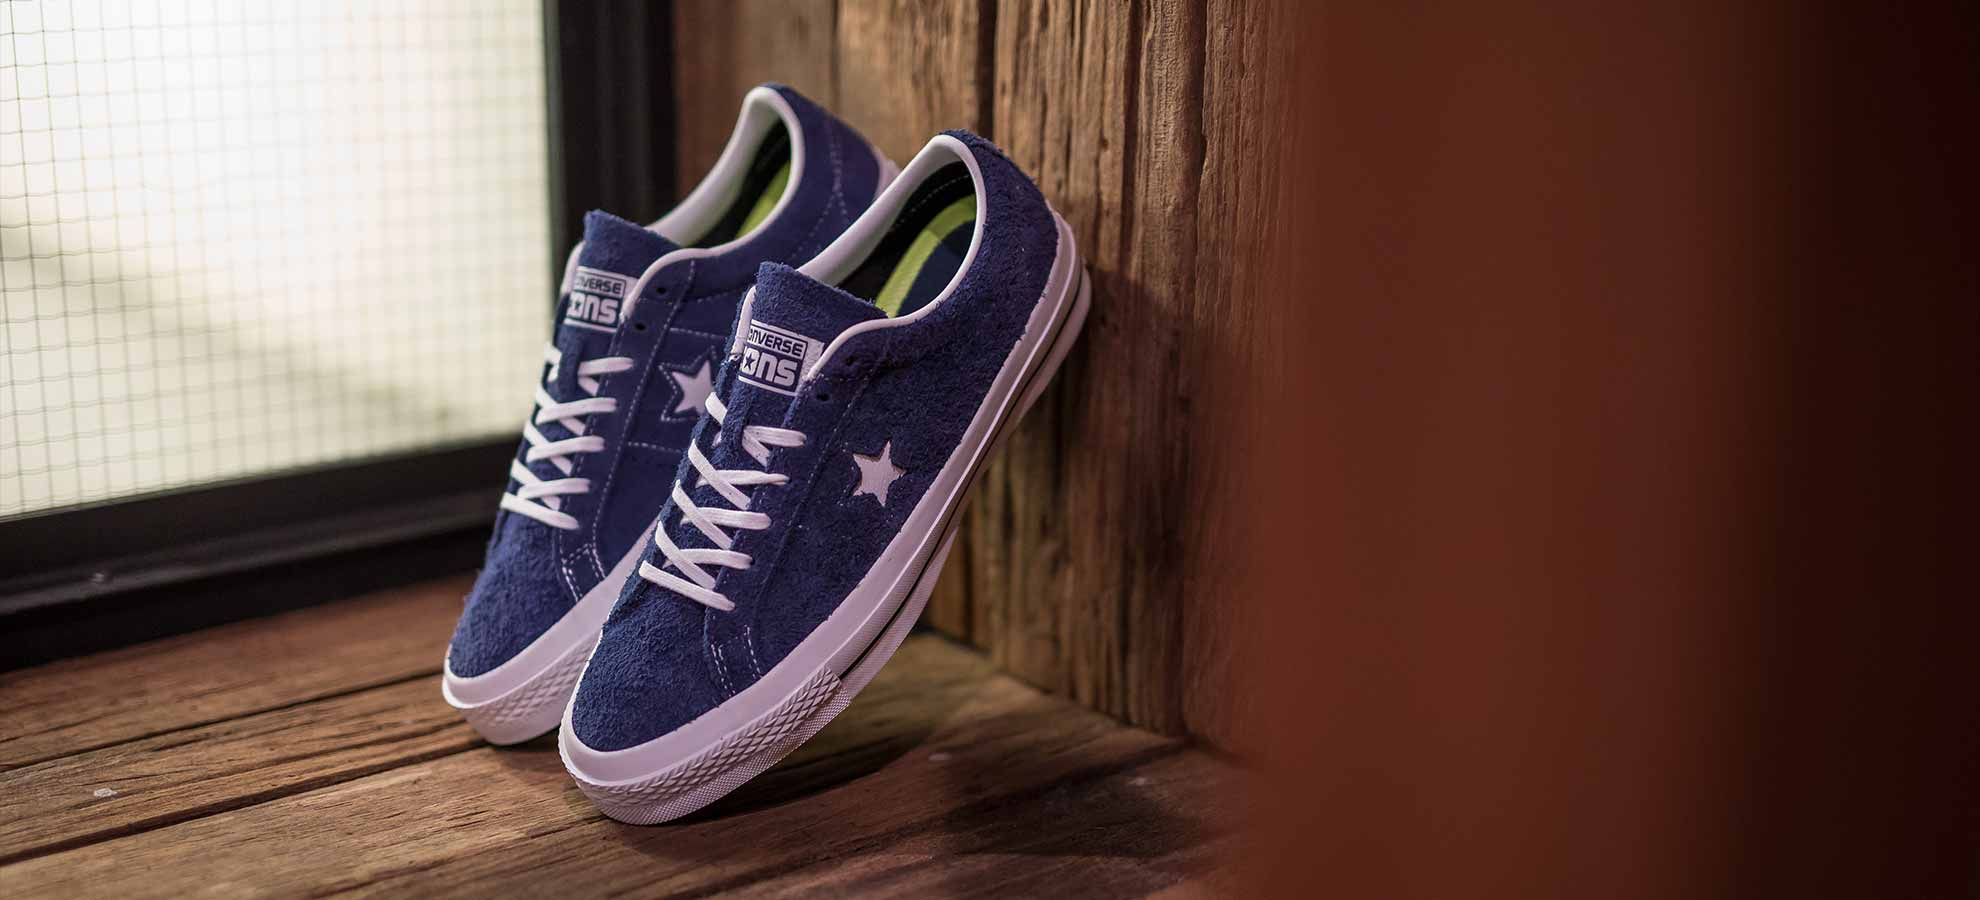 CONVERSE CONS ONE STAR 'HAIRY SUEDE' | CROSSOVER